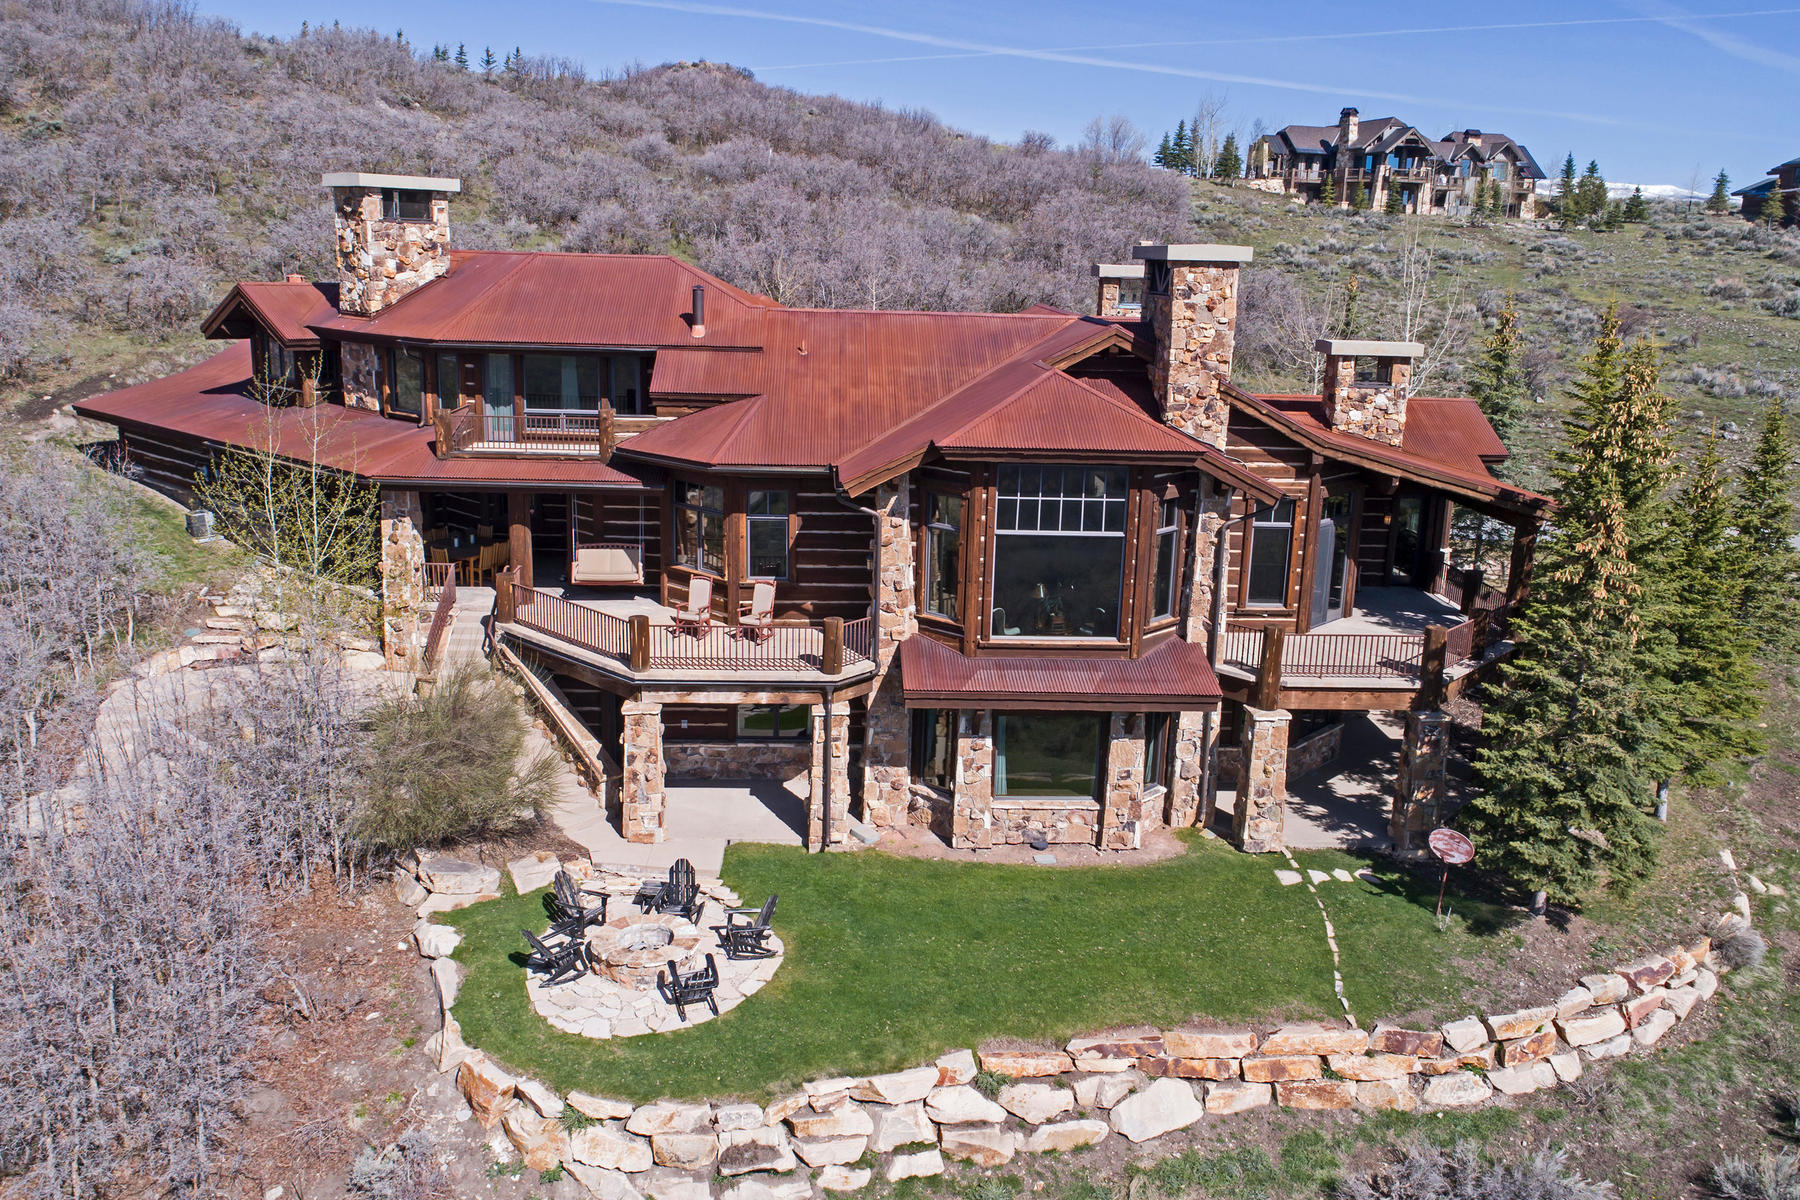 Casa para uma família para Venda às Elegant Promontory Masterpiece in a Private Location with Direct Views of Uintas 8437 N Sunrise Lp Park City, Utah, 84098 Estados Unidos